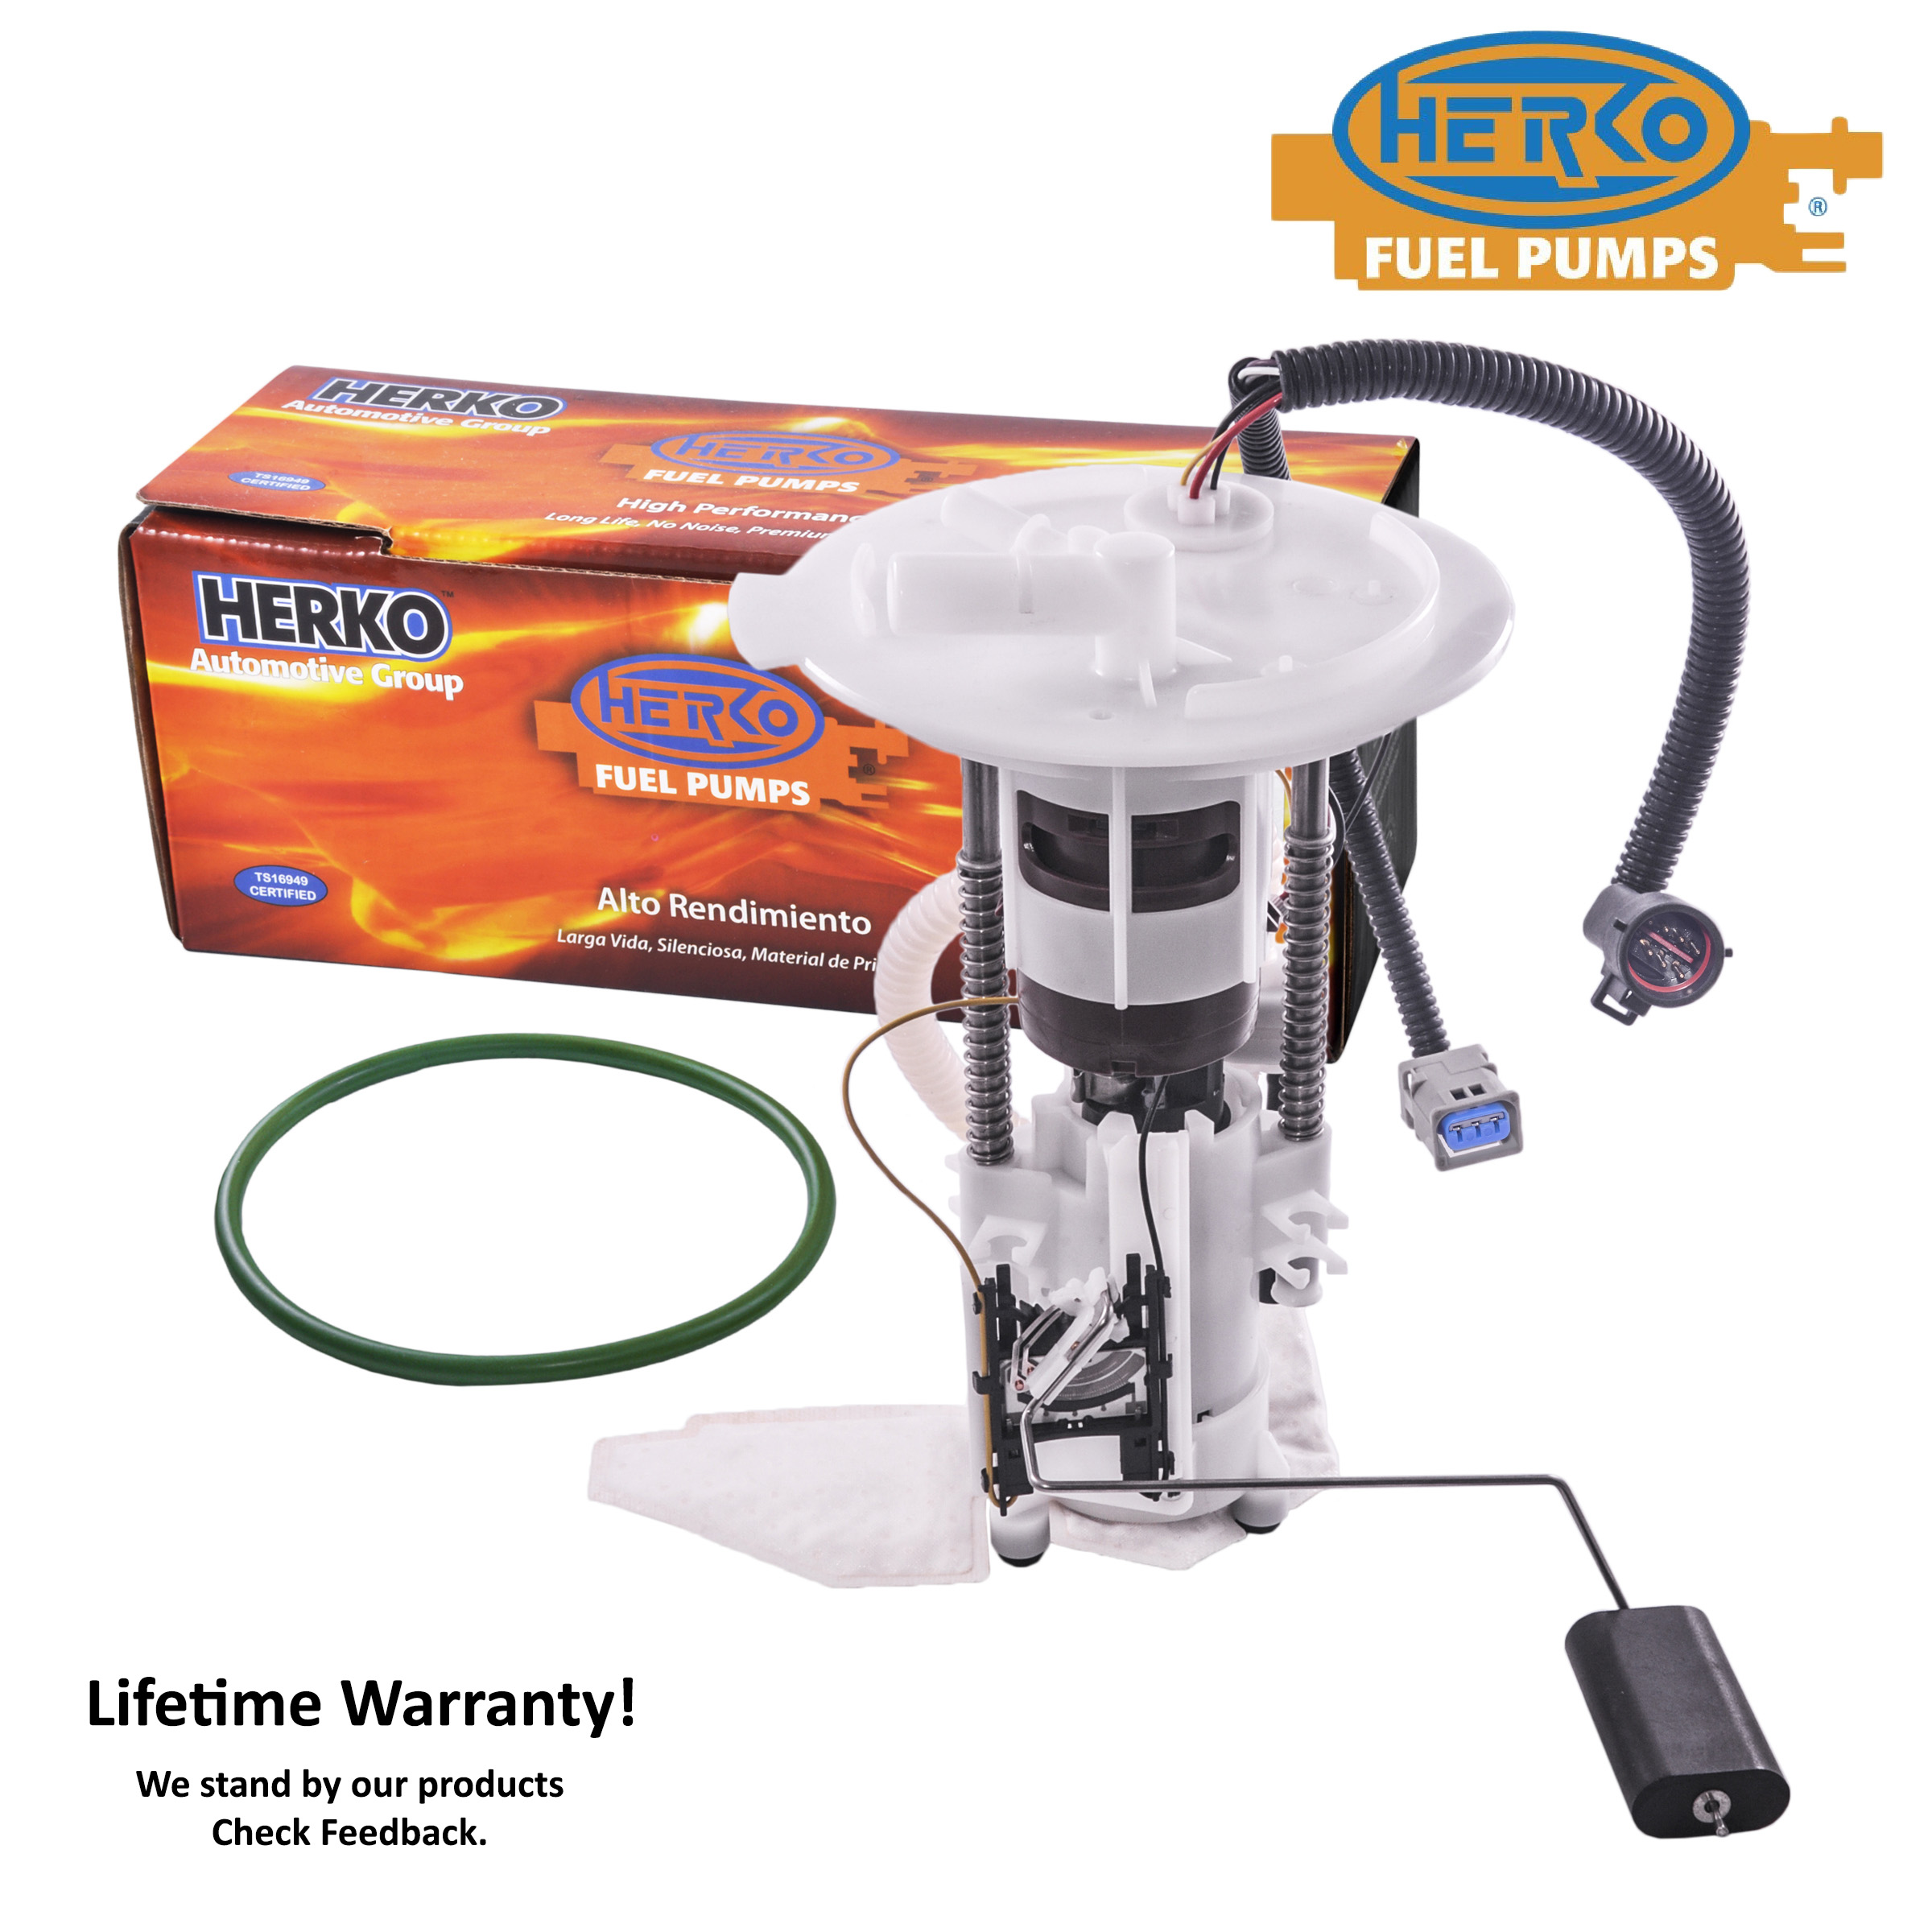 Herko Fuel Pump Module 200ge For Ford Mercury Explorer Sport Trac 06 Filter Description